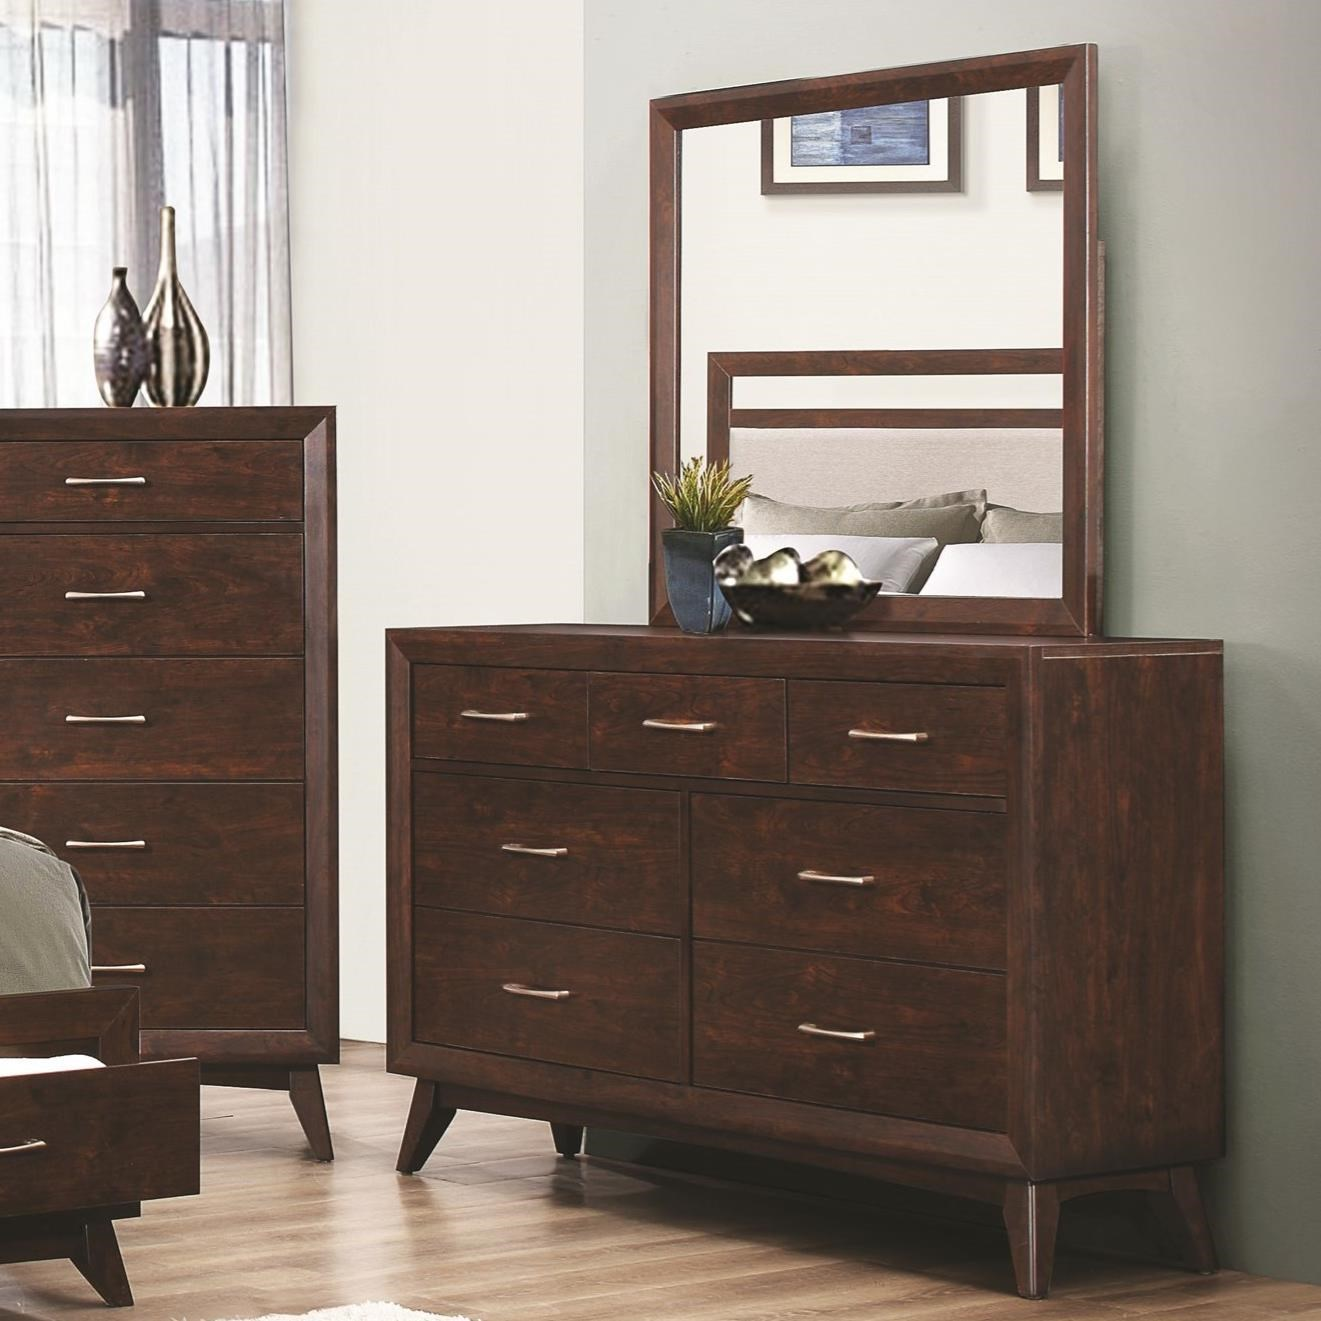 Coaster Carrington 7 Drawer Dresser and Mirror - Item Number: 205043+205044